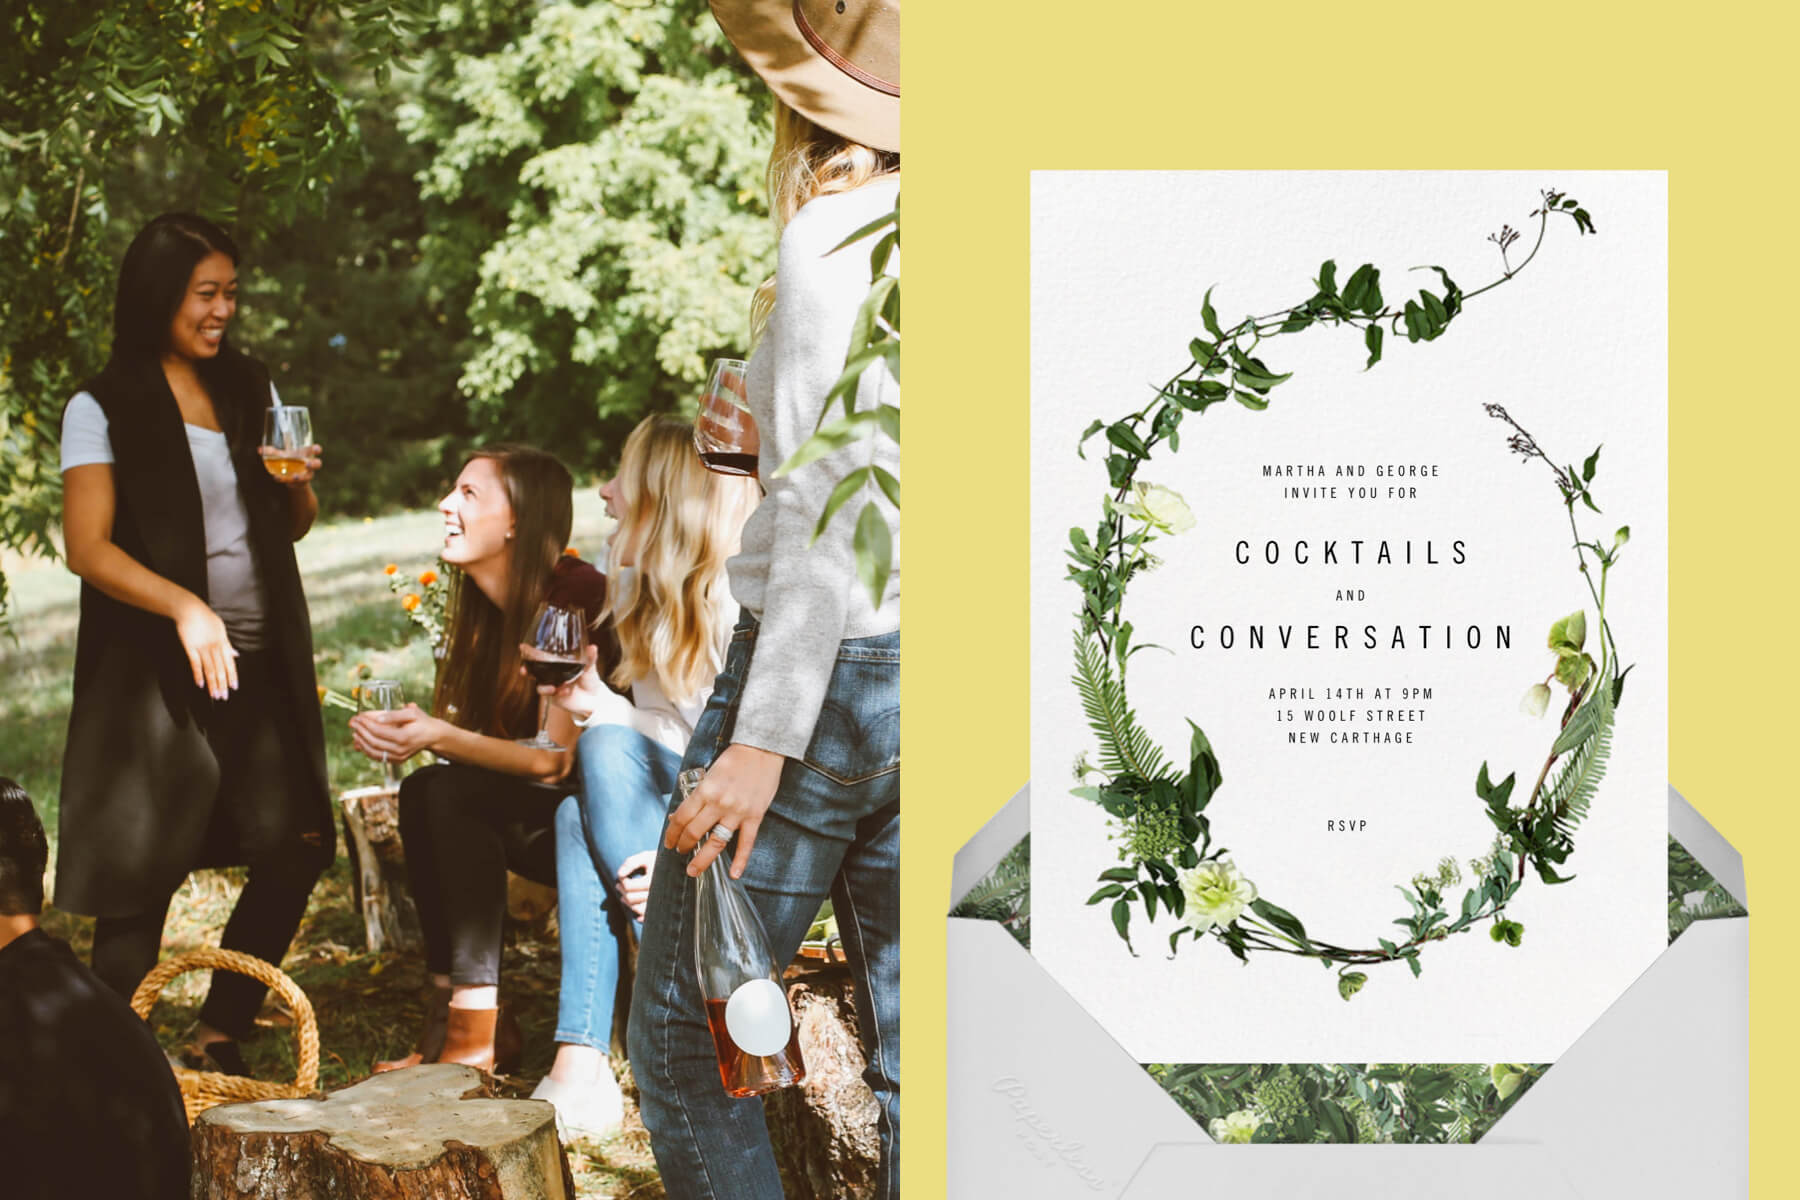 """Left: Photo of a group of young friends drinking wine in the park.   Right: """"Chincoteague"""" invitation by Paperless Post featuring a floral design on a yellow background."""